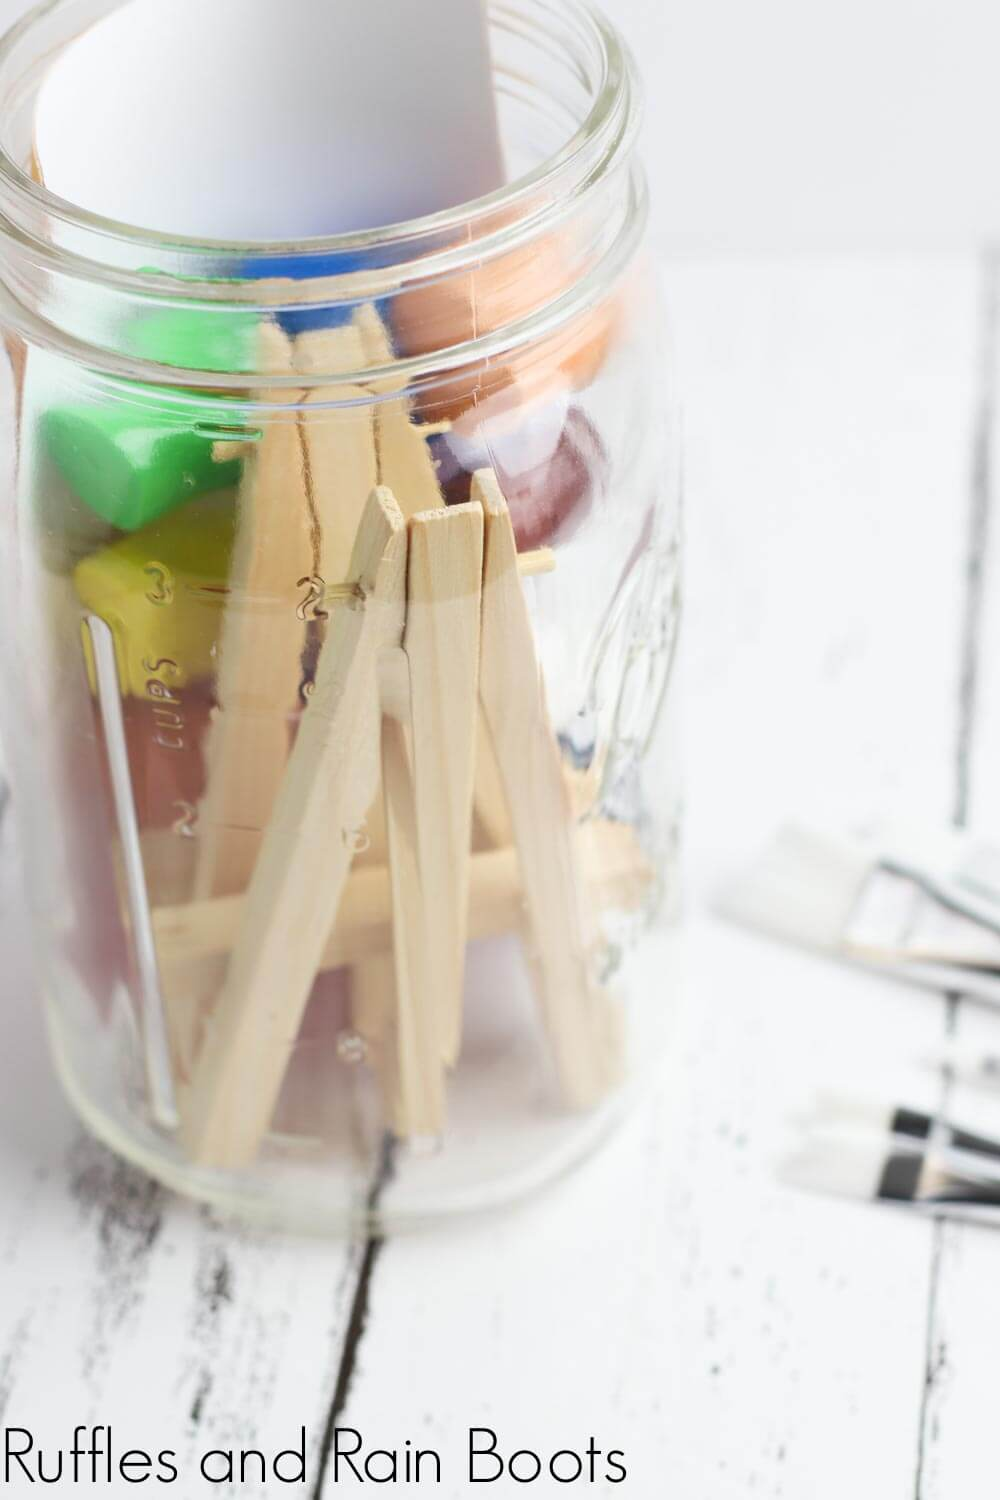 easy and fun date night idea for painting date night in-process step of miniature easels in the mason jar on a white background